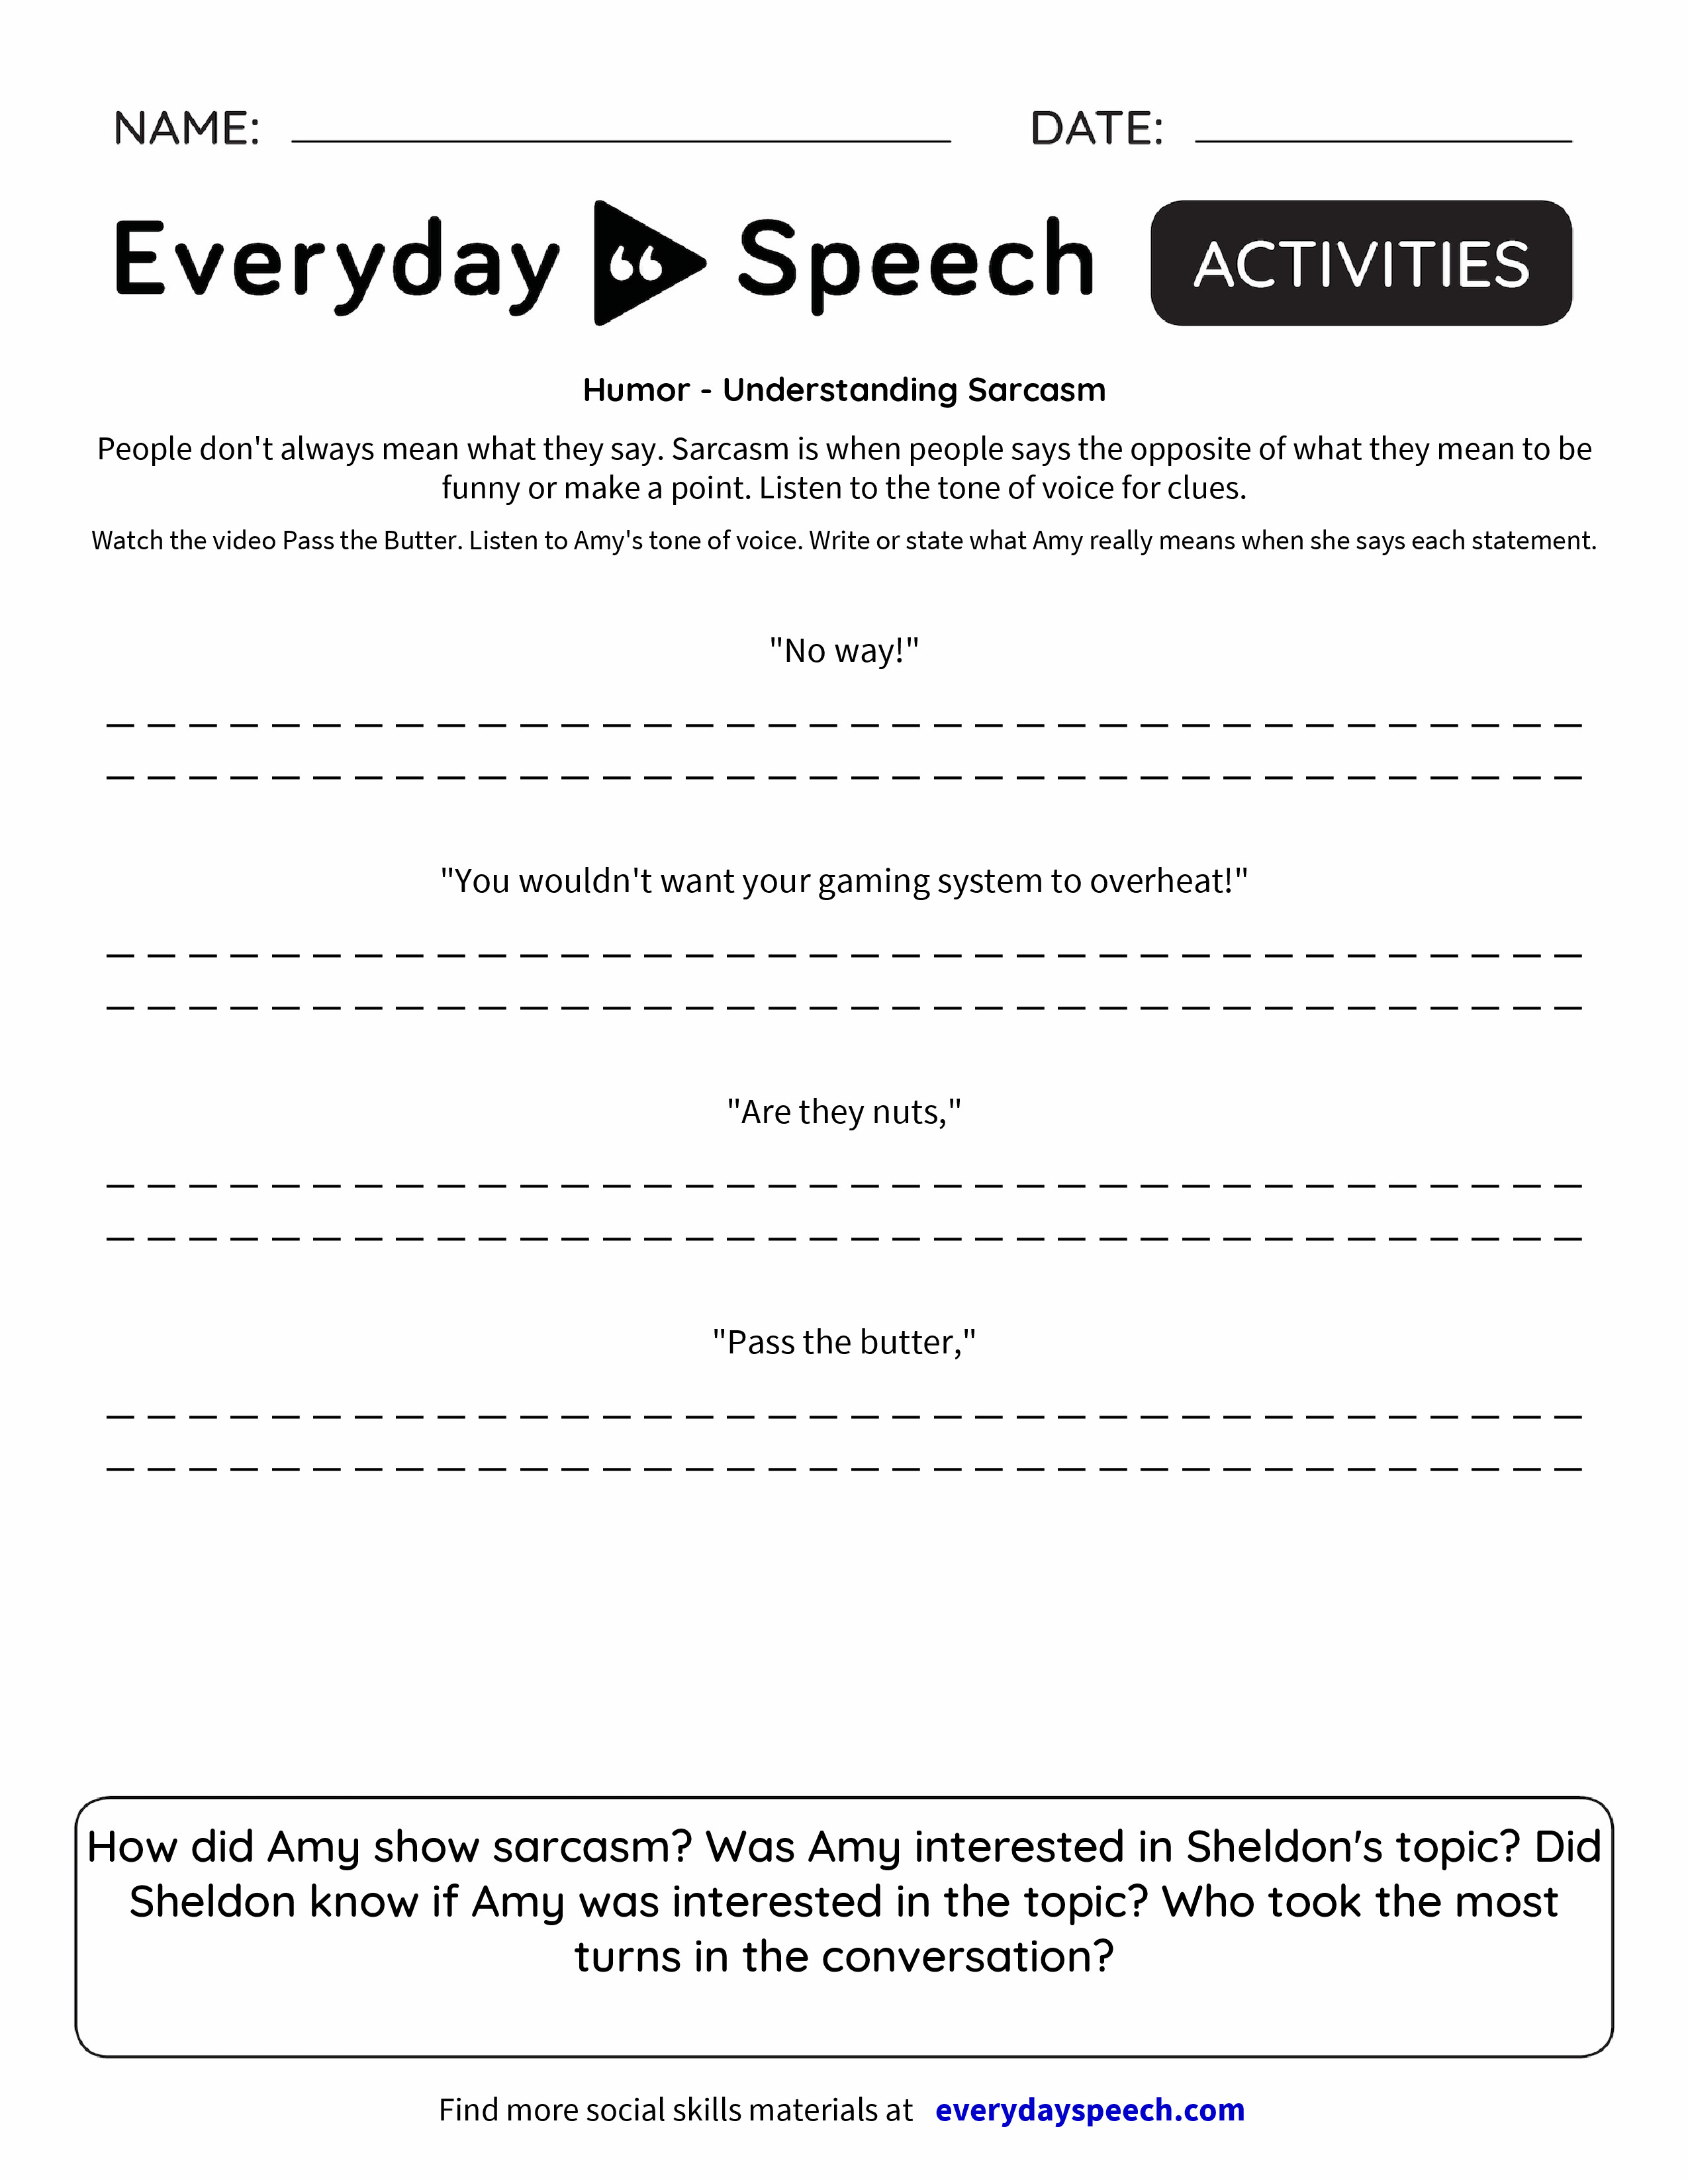 Humor Understanding Sarcasm Everyday Speech Everyday Speech – Tone Worksheets